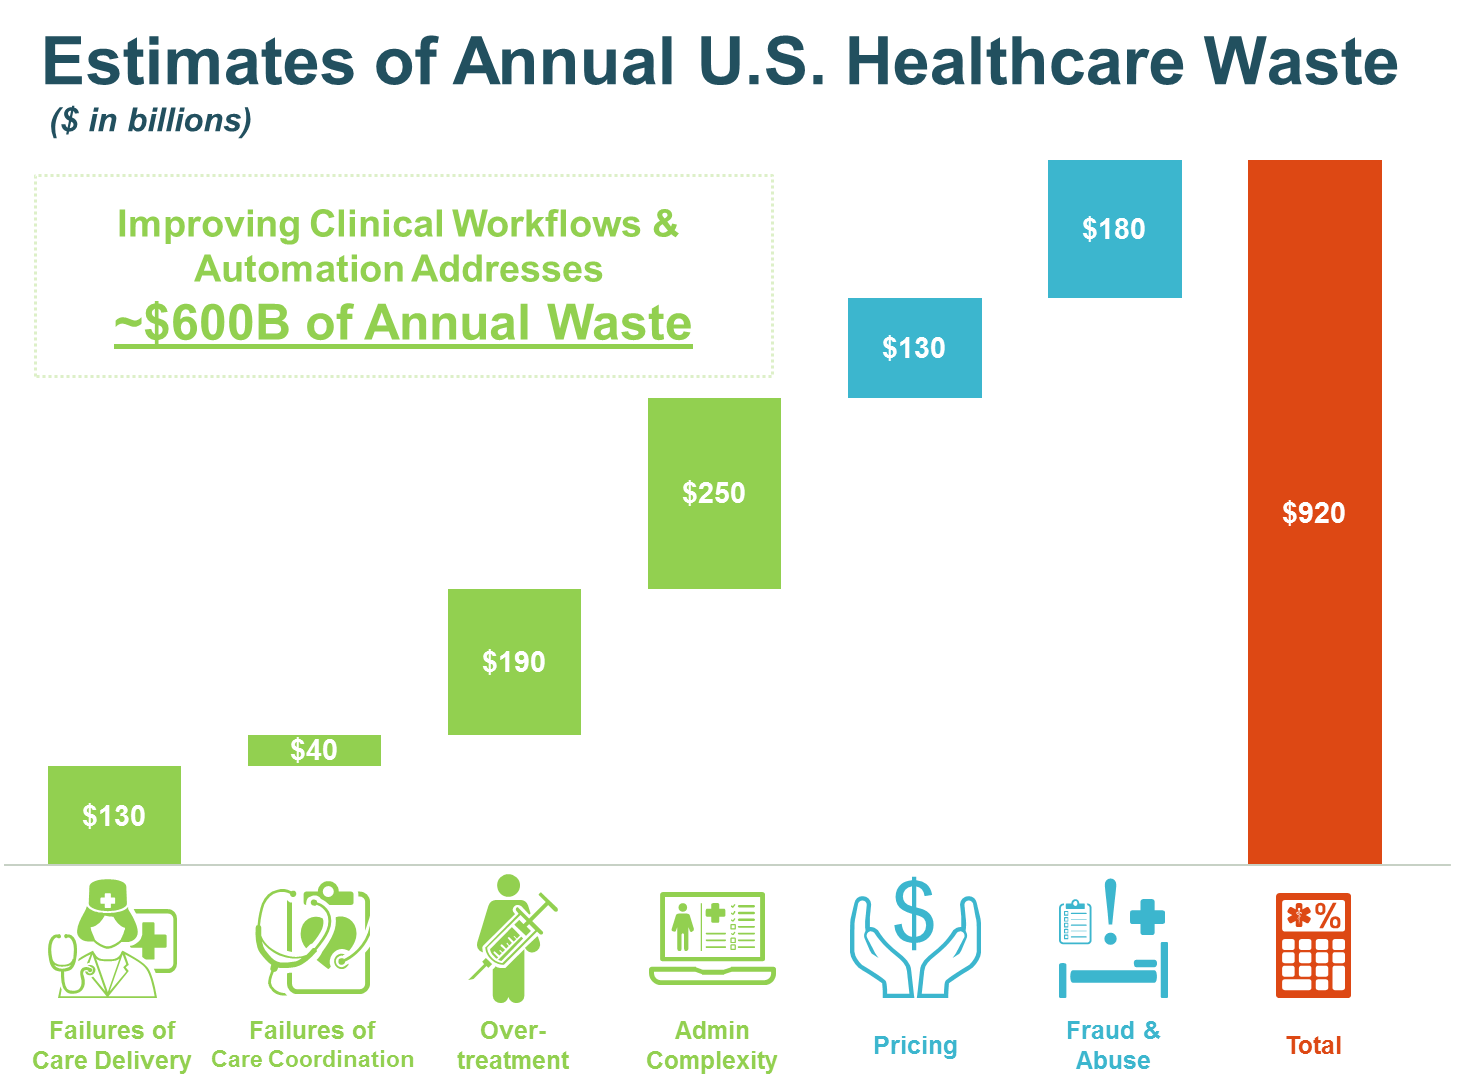 U.S. Healthcare Waste